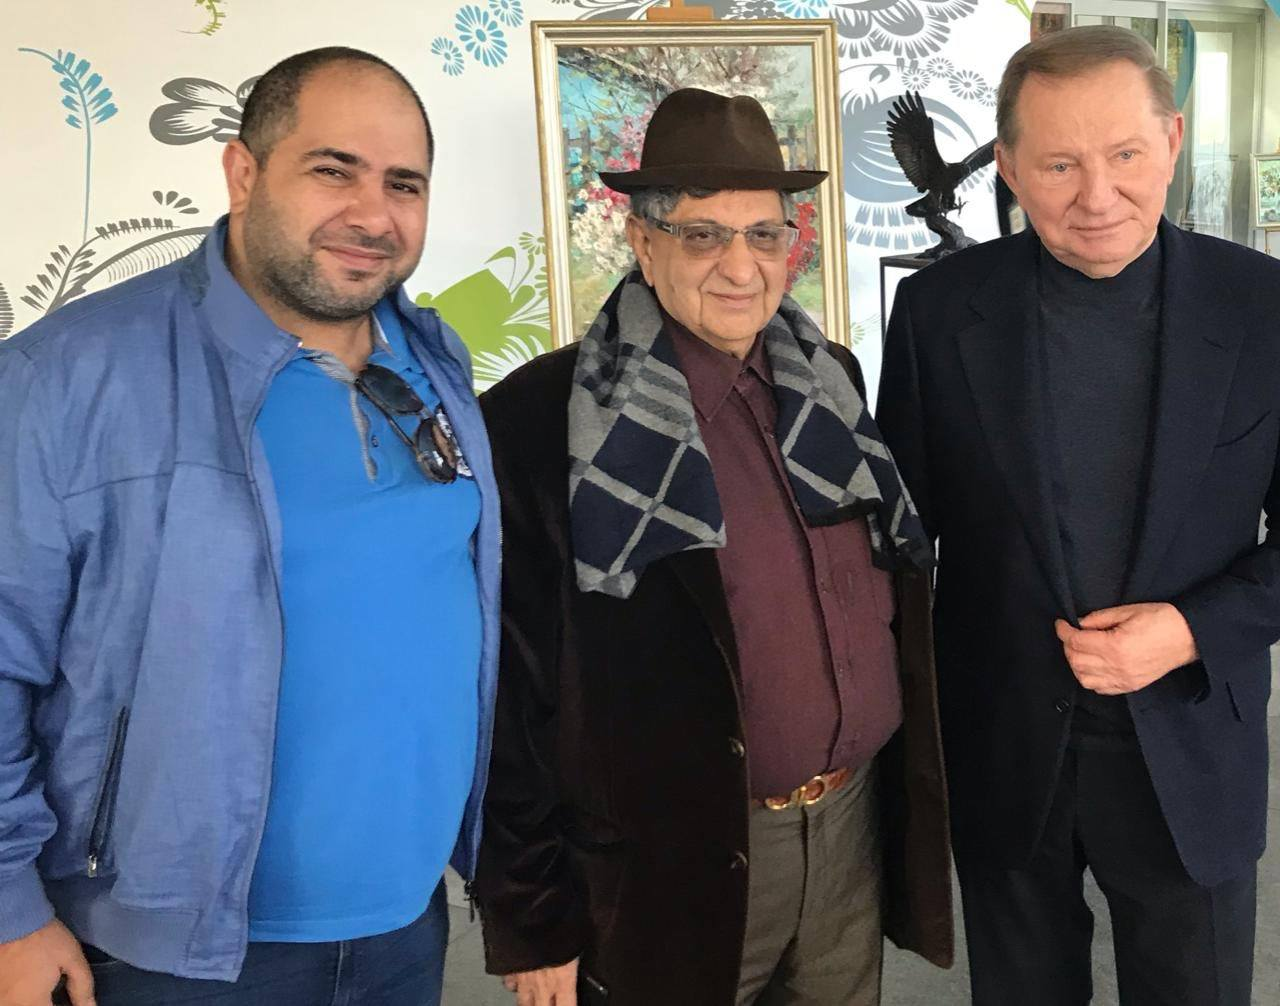 Naum Koen Наум Коэн Наум Коен with Cyrus S. Poonawalla & Leonid Kuchma in Ukraine